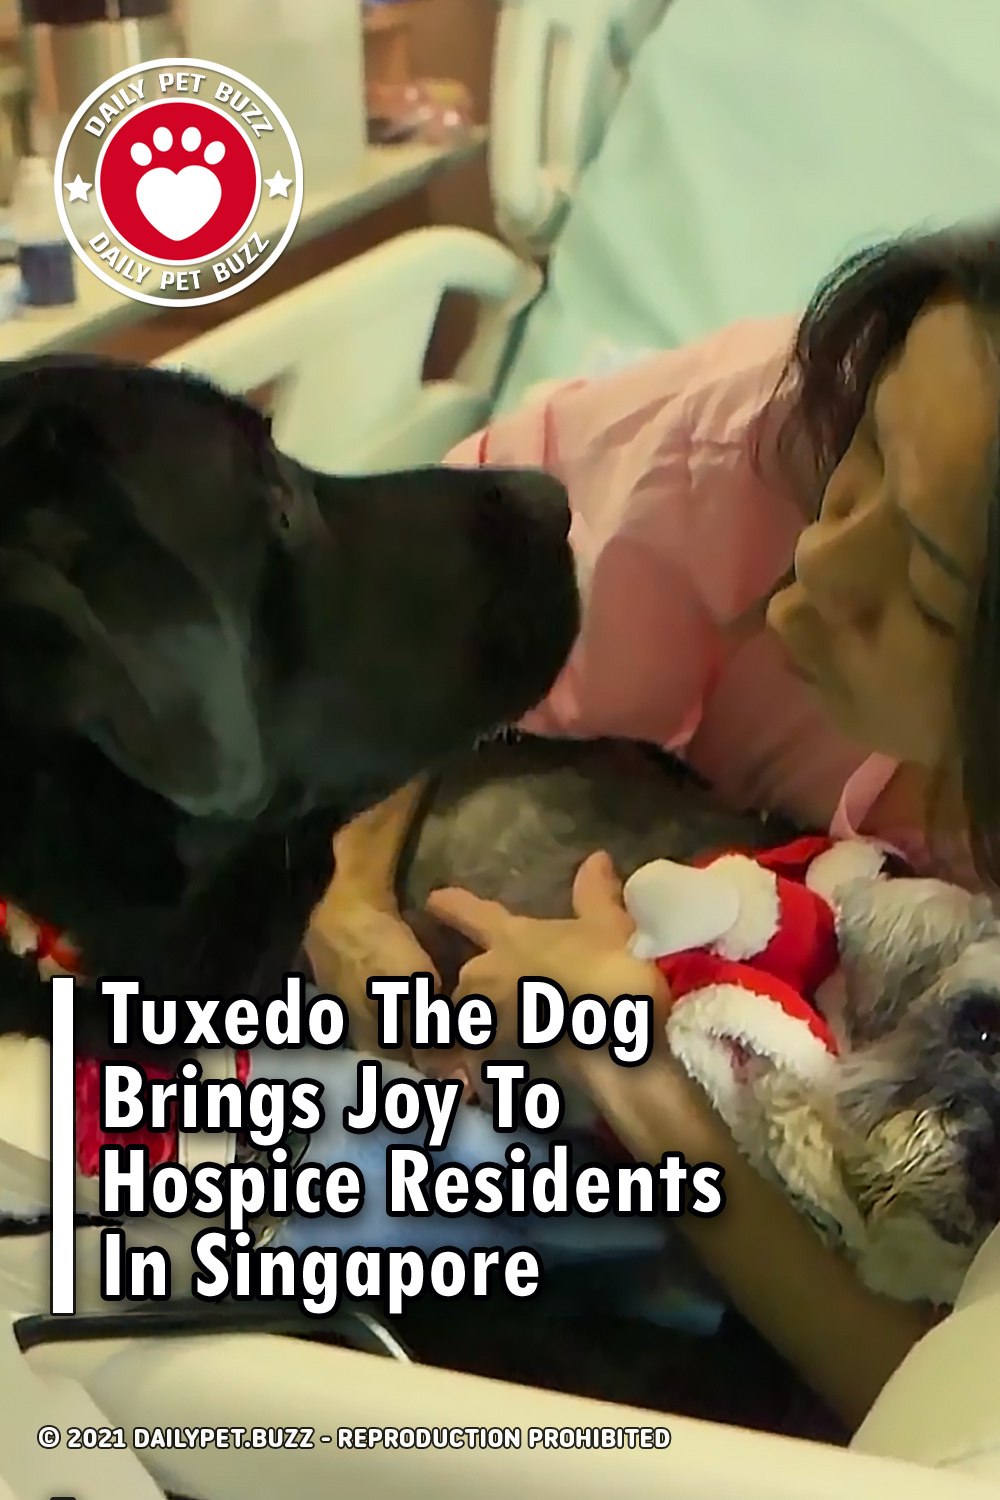 Tuxedo The Dog Brings Joy To Hospice Residents In Singapore